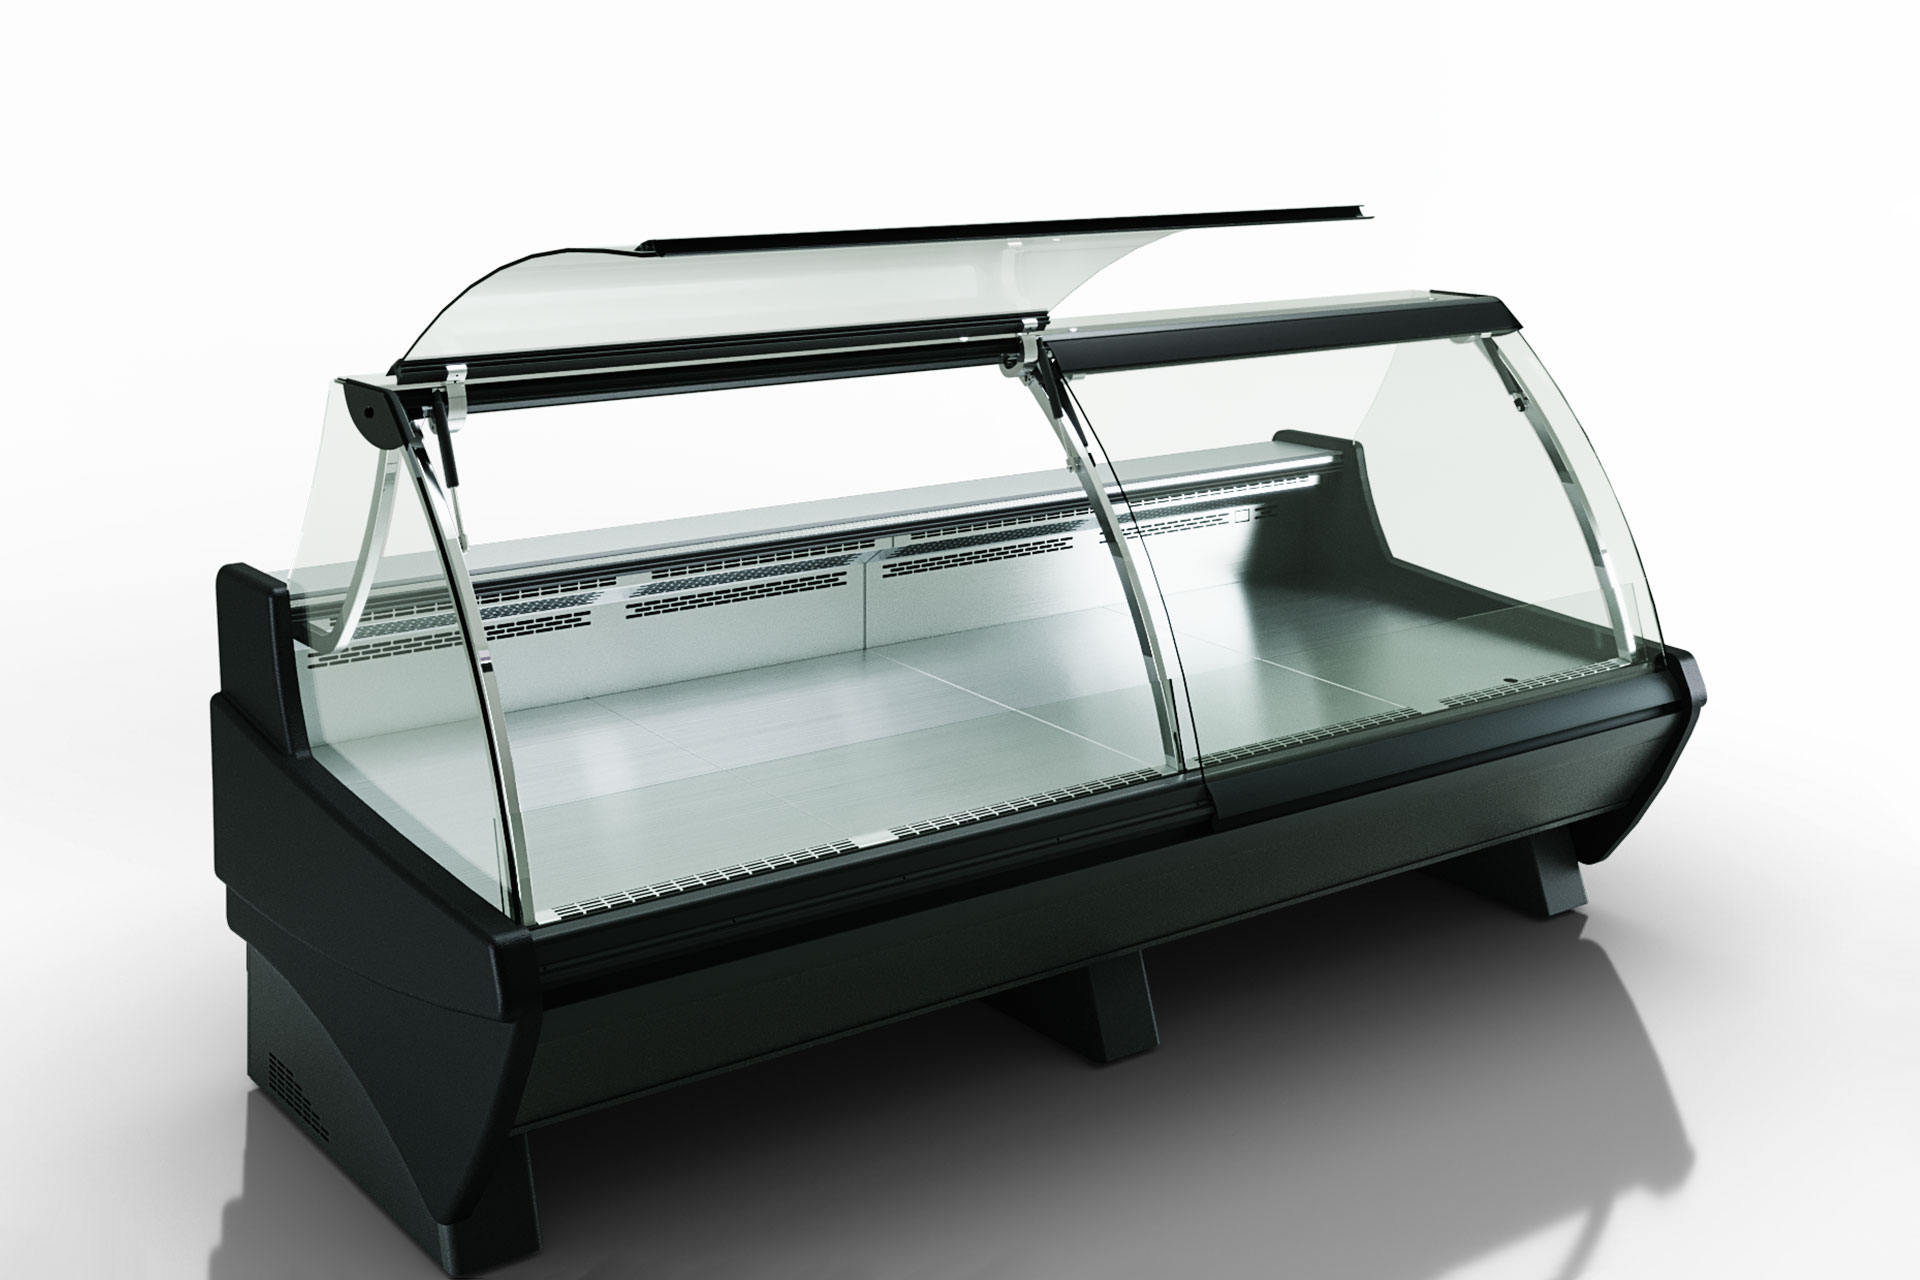 Counter Symphony luxe MG 100 deli PS 125-DLM